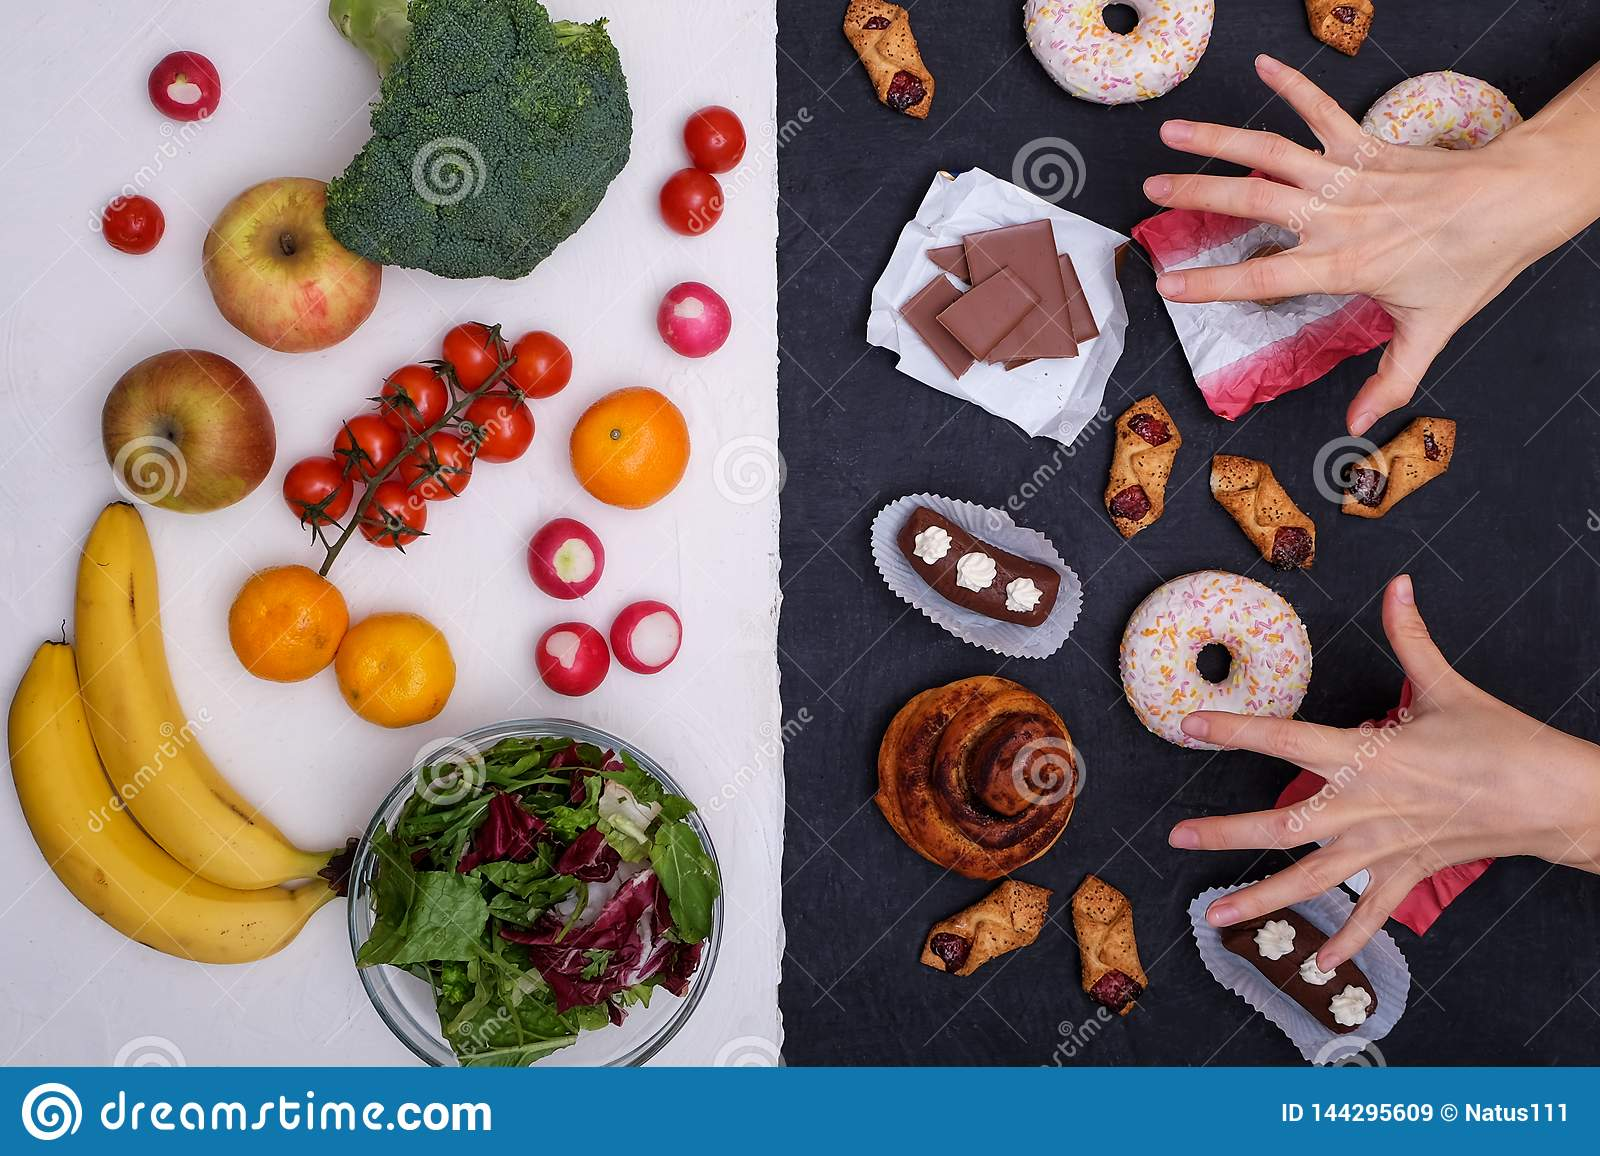 Concept Photo Of Healthy And Unhealthy Food  Fruits And Vegetables